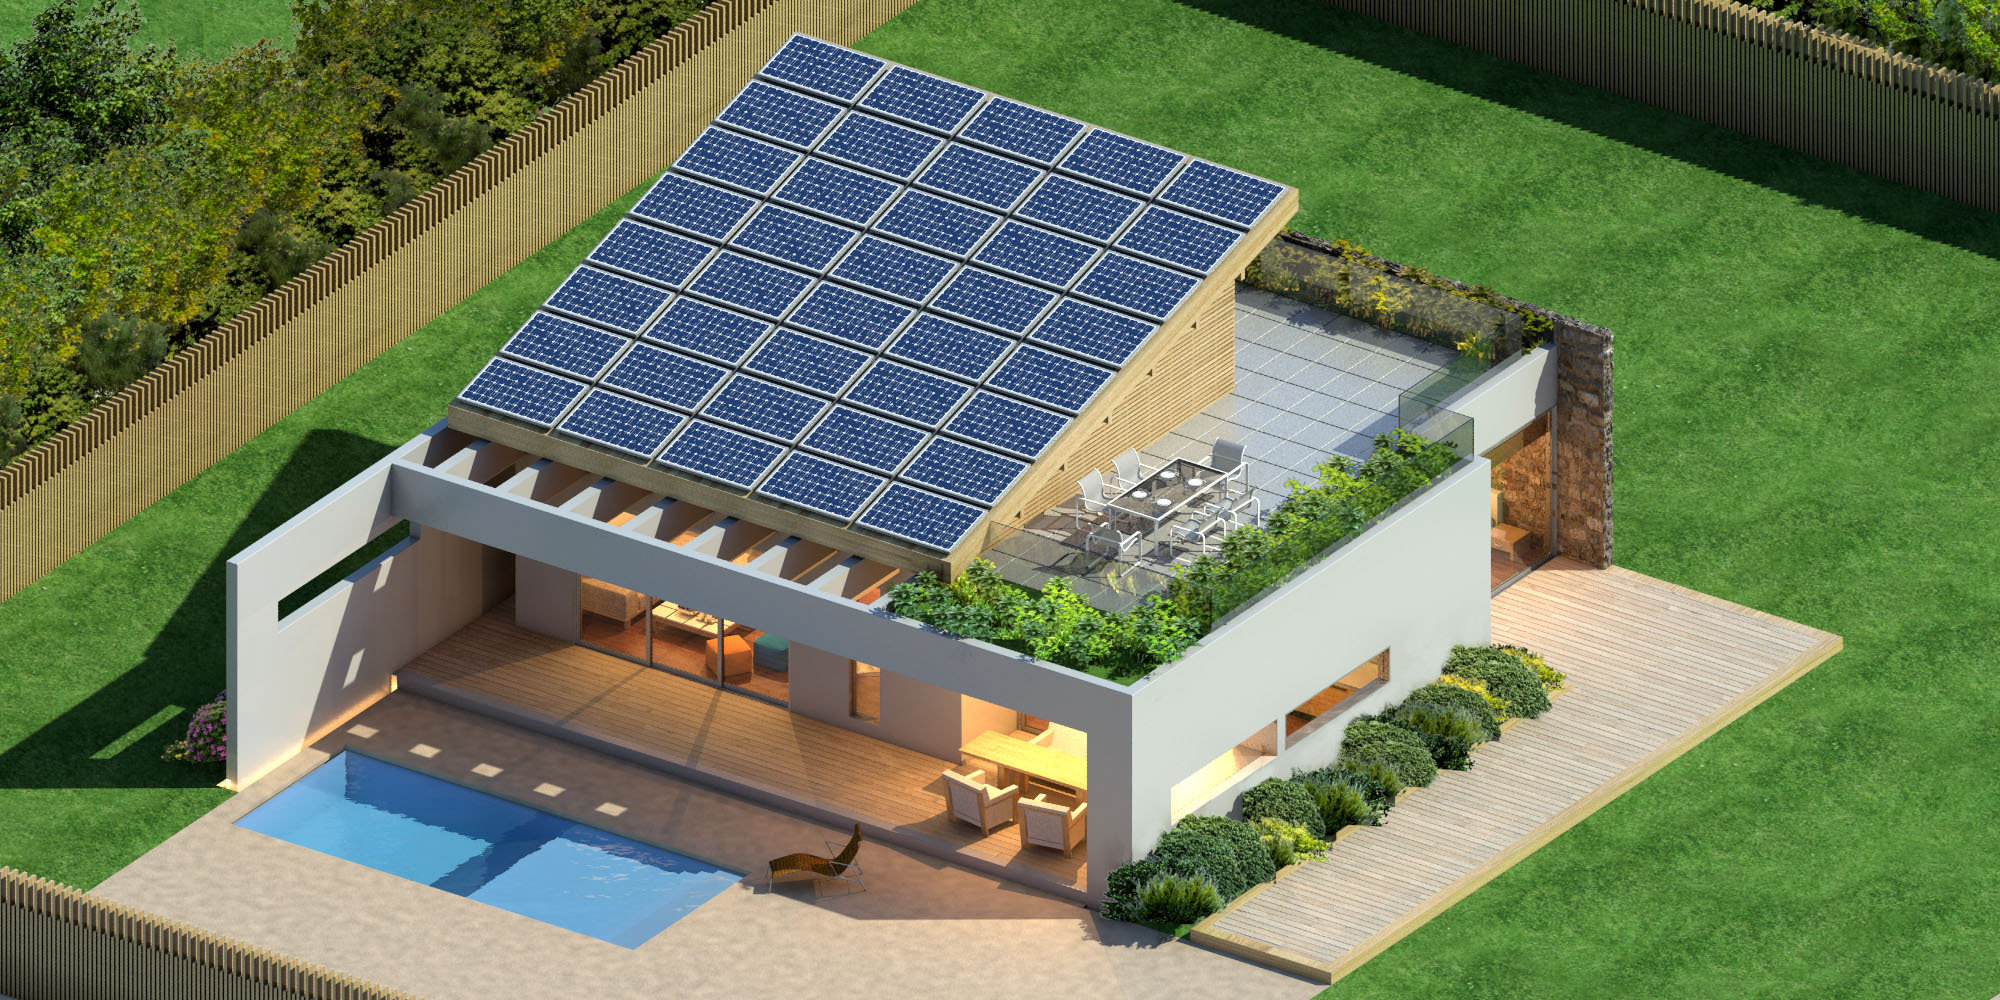 Arzumanidis investments new build solar house in greece for New house project